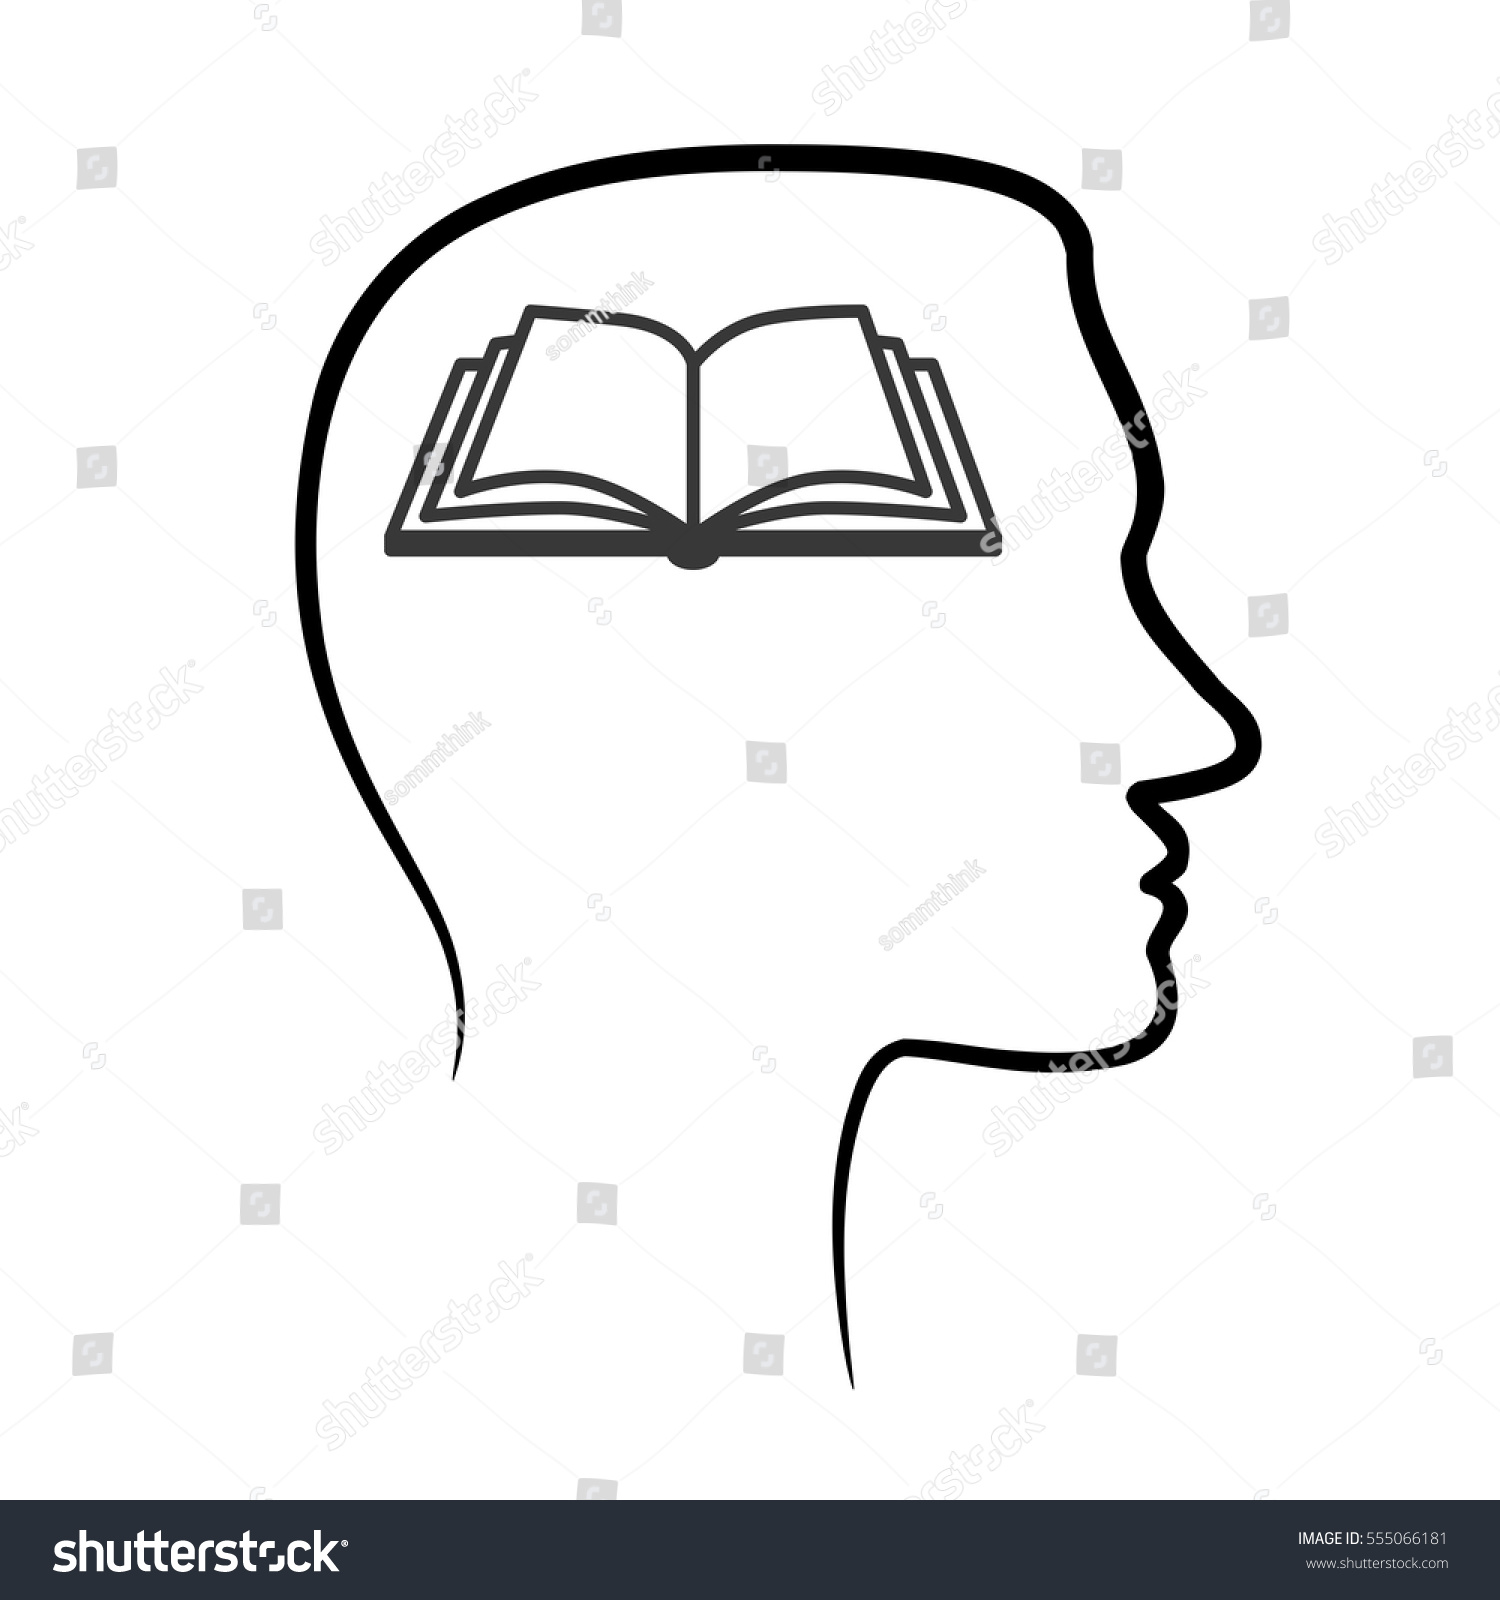 Human head and brain outline